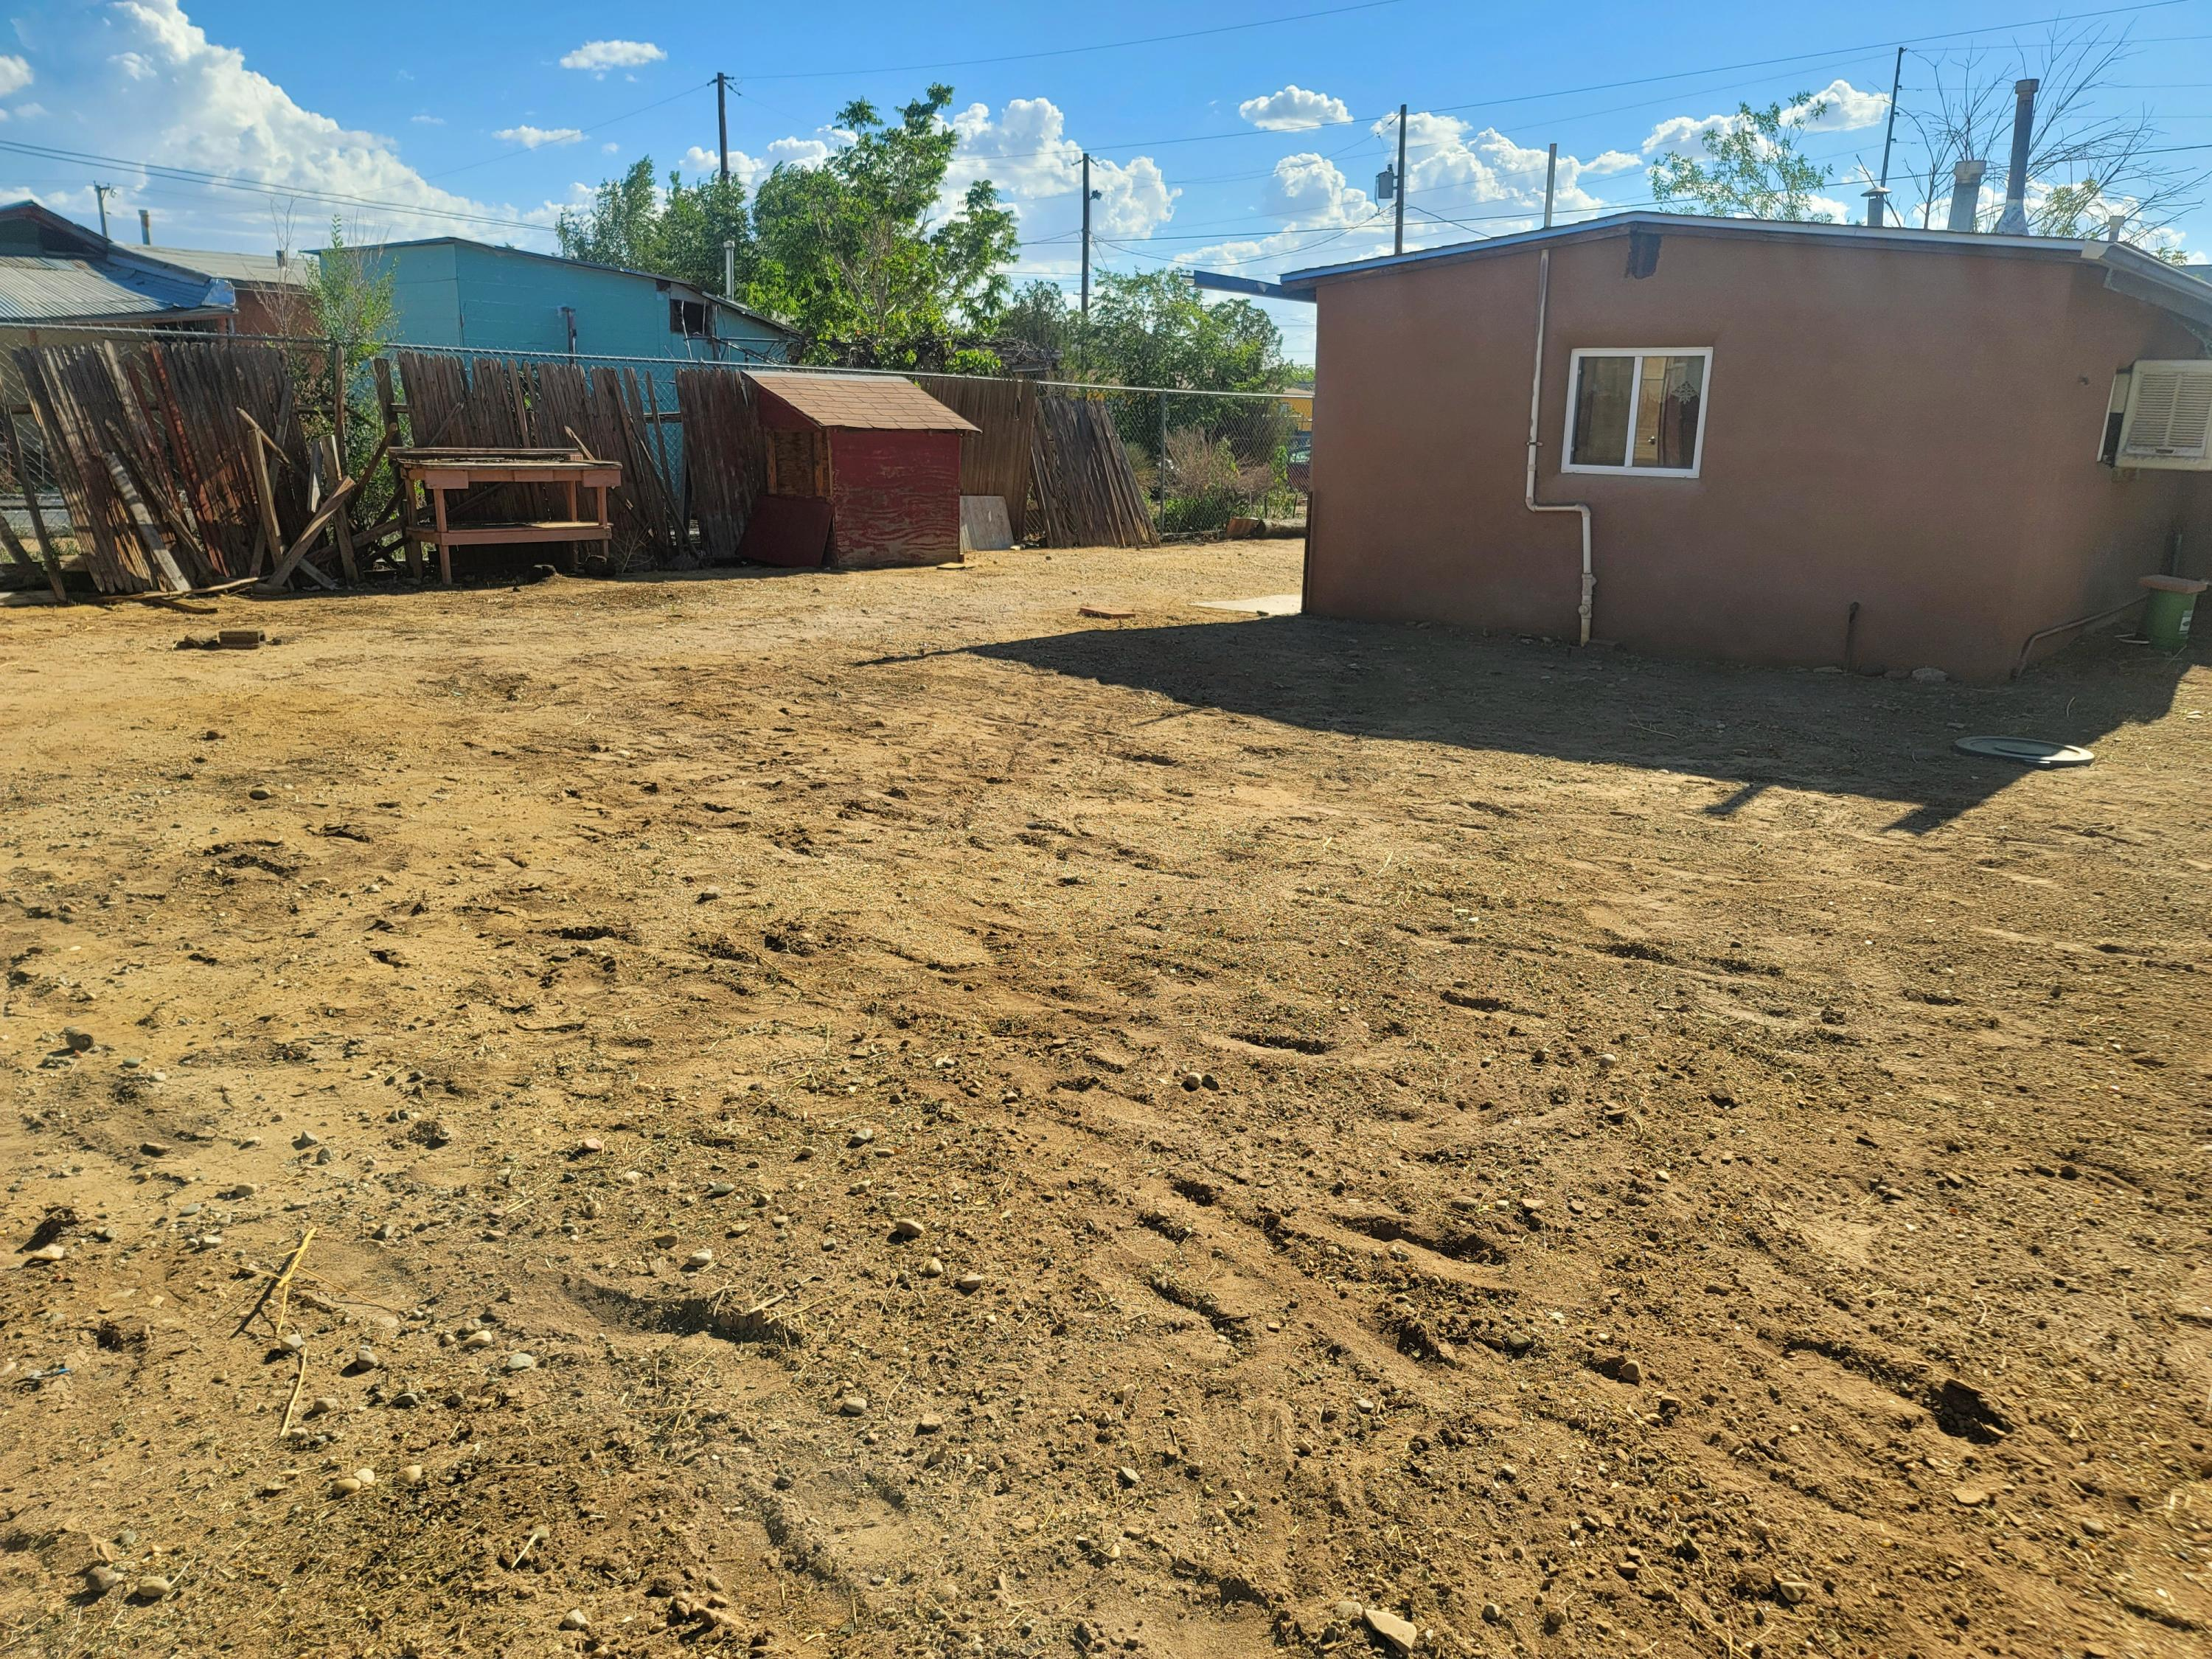 This 2 bedroom 1 bath is an Investor dream! Great location in Northwest Albuquerque. Nice big lot, ready for some TLC to make this house into your next HGTV home! Schedule your appointment today!